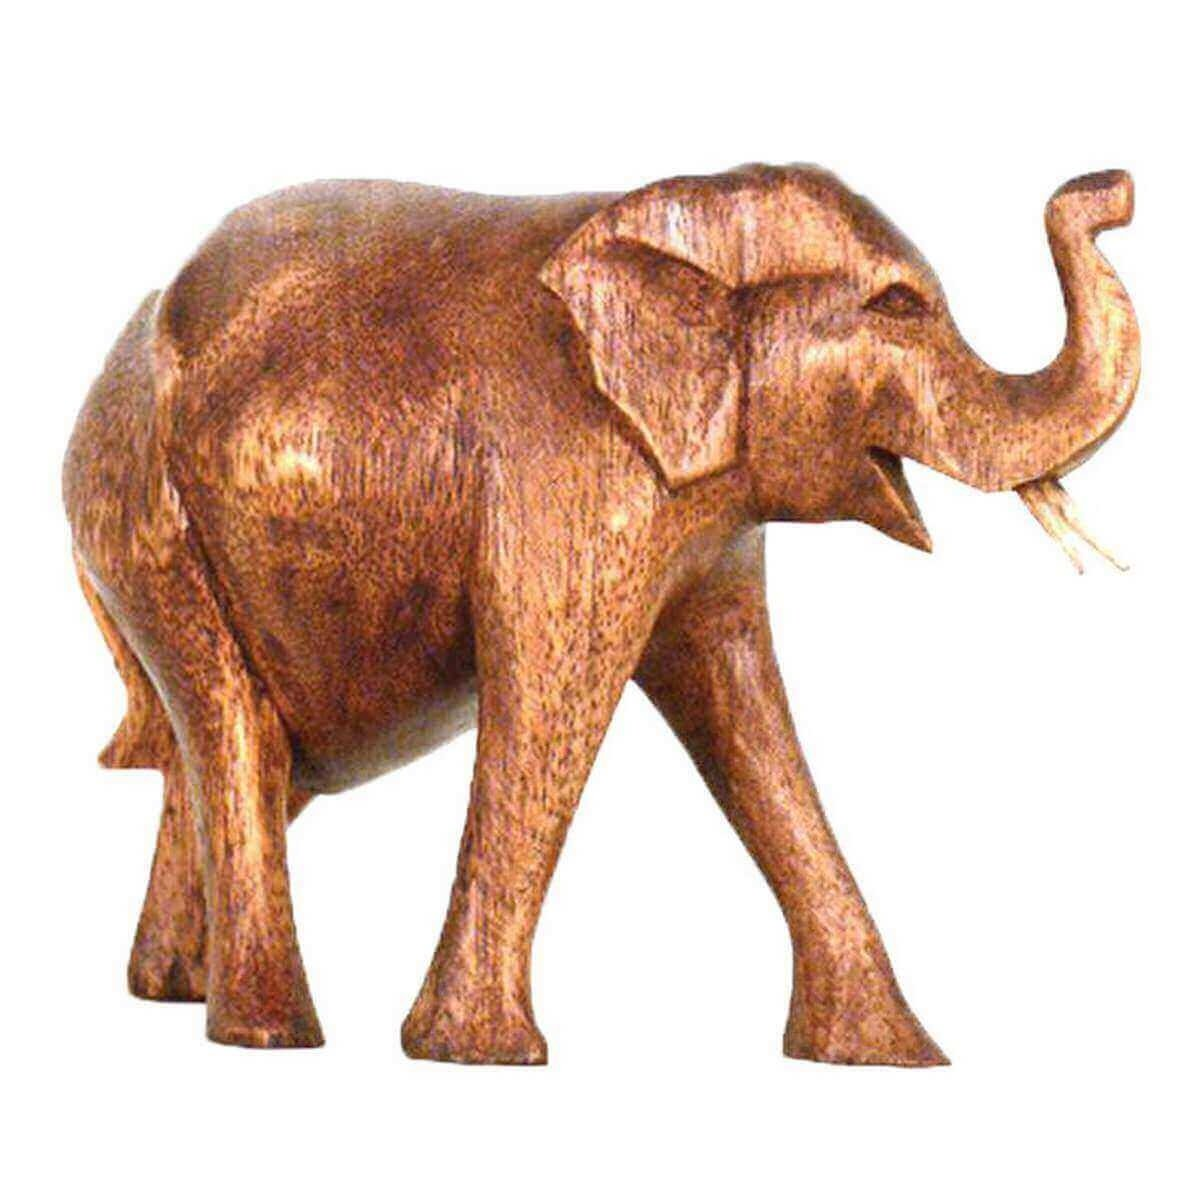 elefant holz figur skulptur abstrakt holzfigur afrika asia gl cksbringer deko ebay. Black Bedroom Furniture Sets. Home Design Ideas